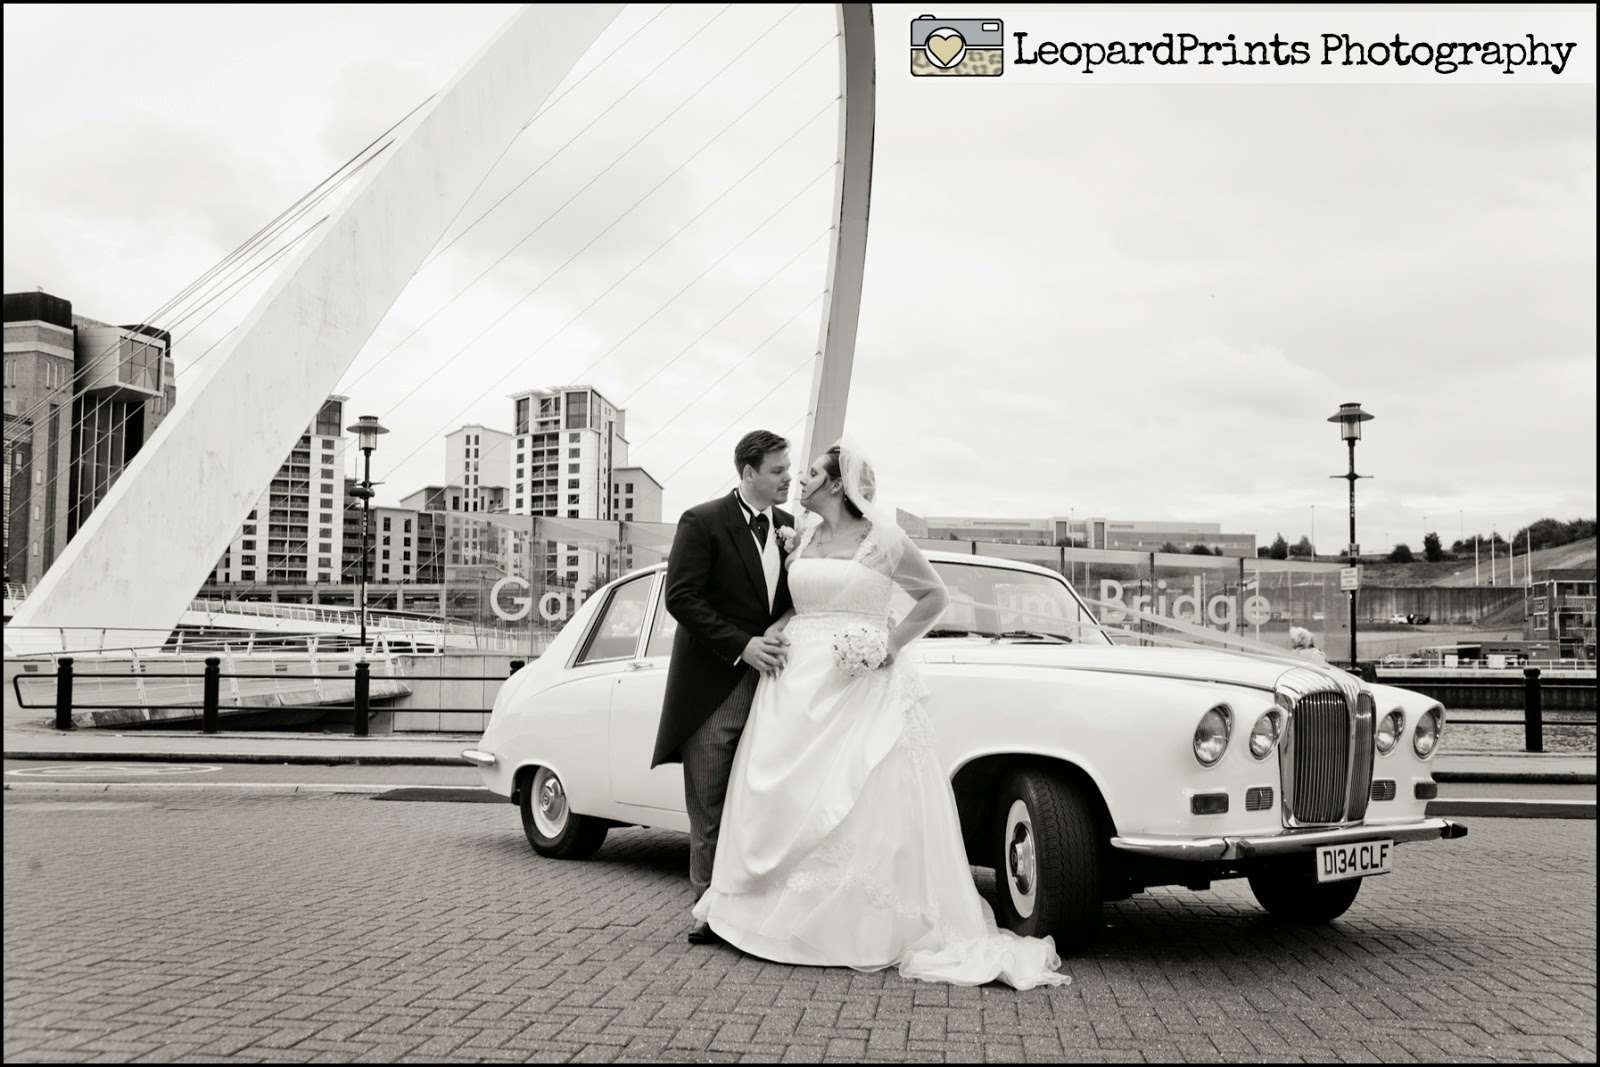 wedding chair covers newcastle upon tyne fabric office photographer at the royal station hotel